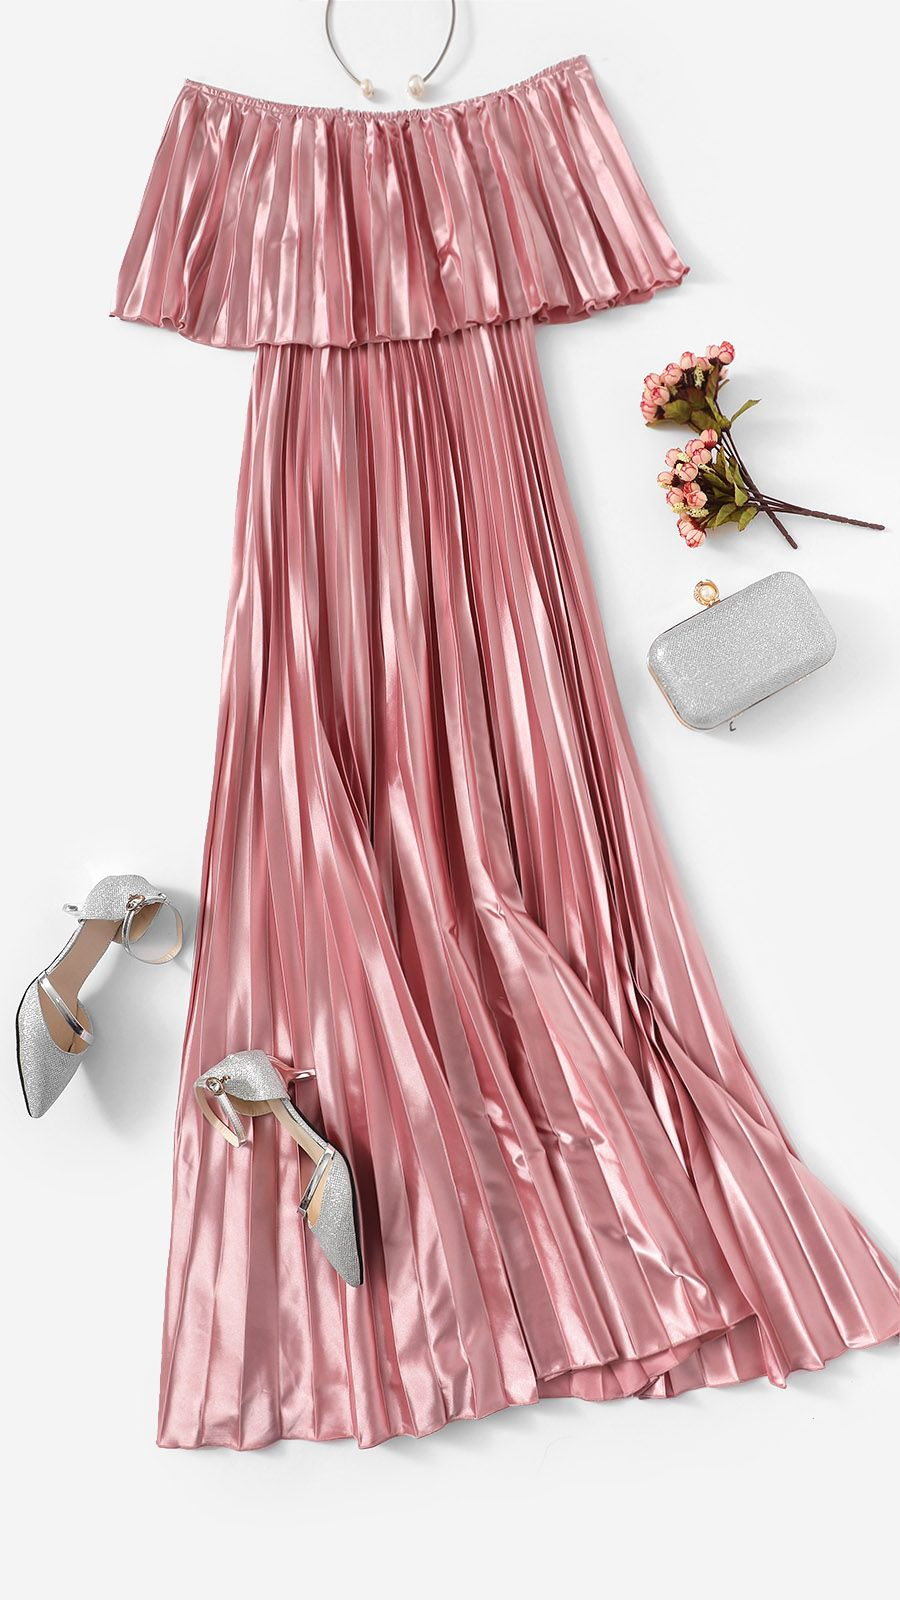 ea79438bbbd7a Pink Off the Shoulder Flounce Pleated Satin Girls Sexy Dress ...